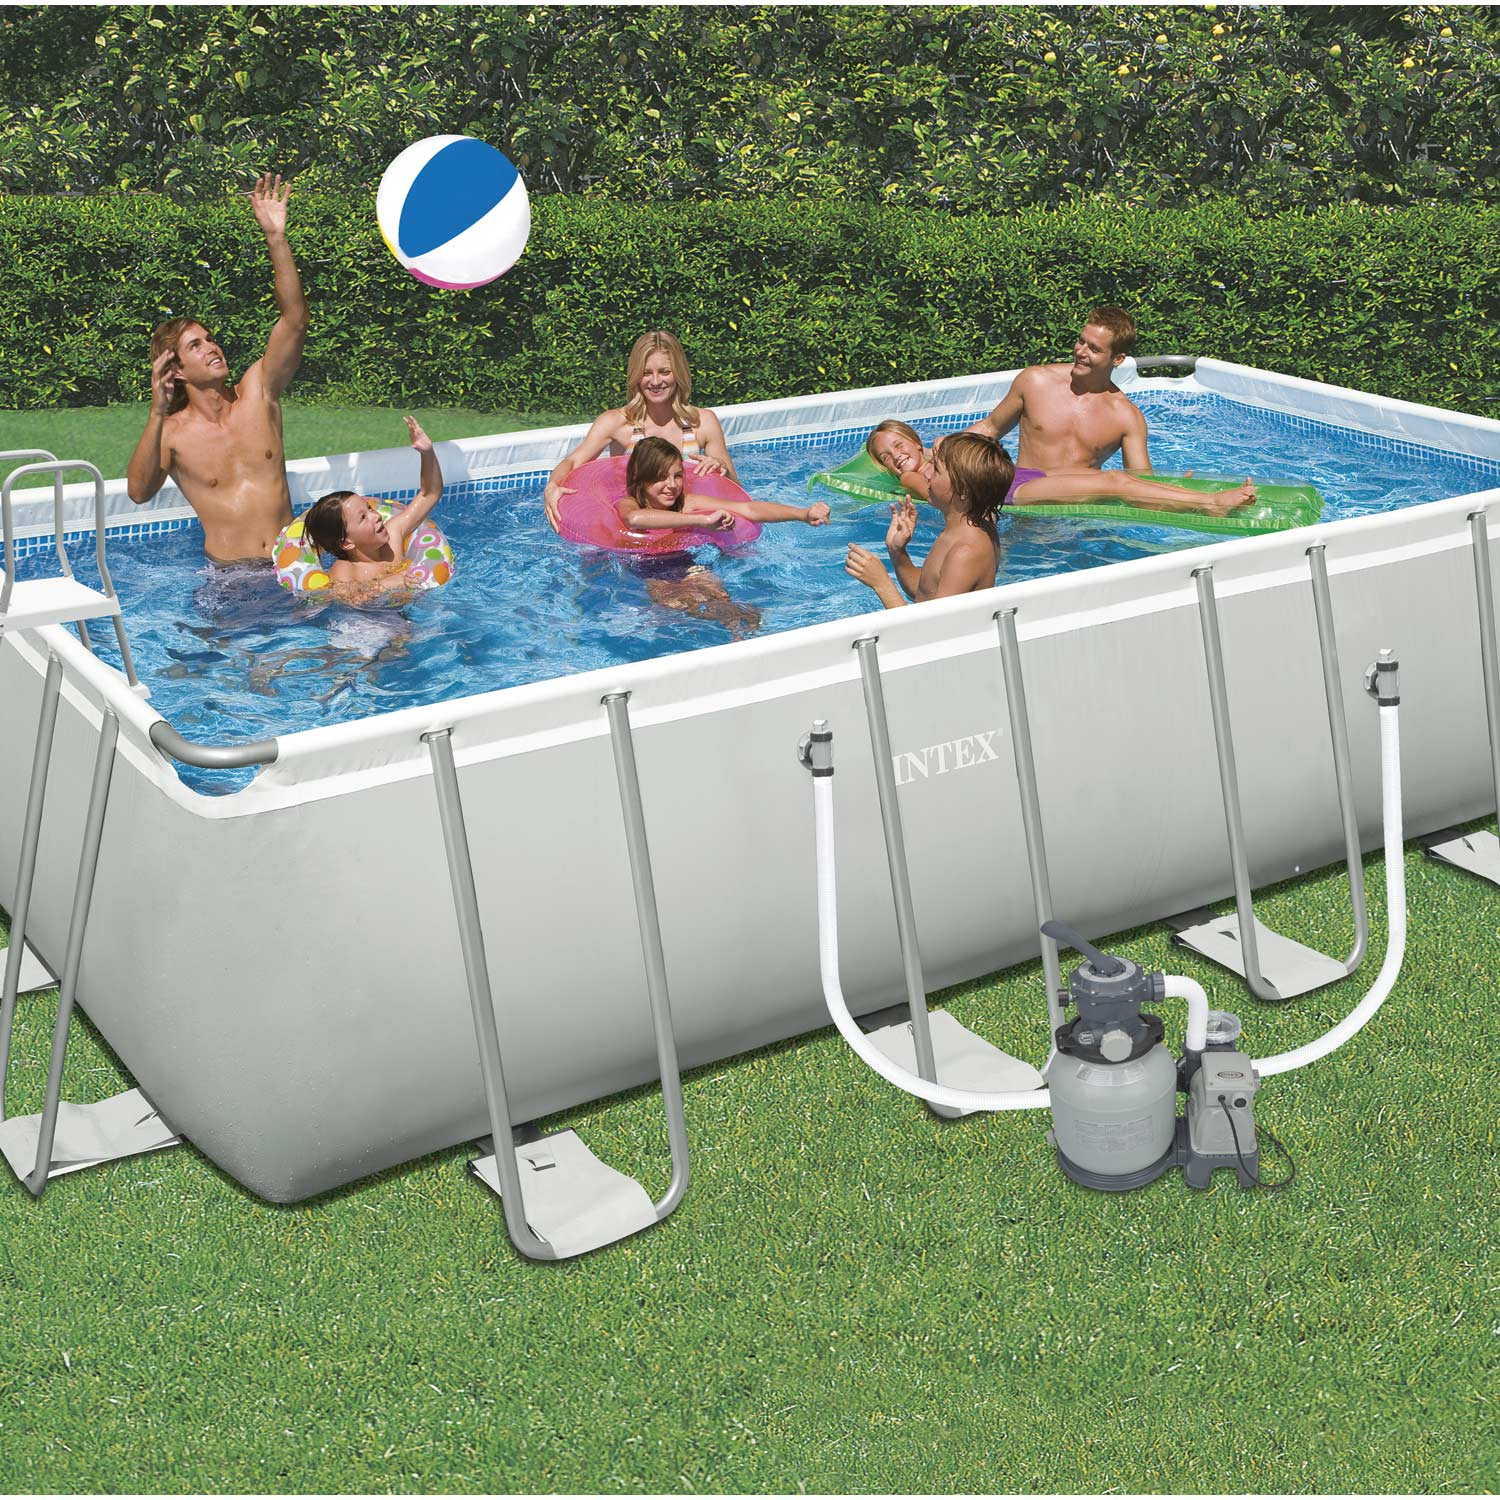 Piscine hors sol autoportante tubulaire ultra silver intex for Piscine hors sol teck